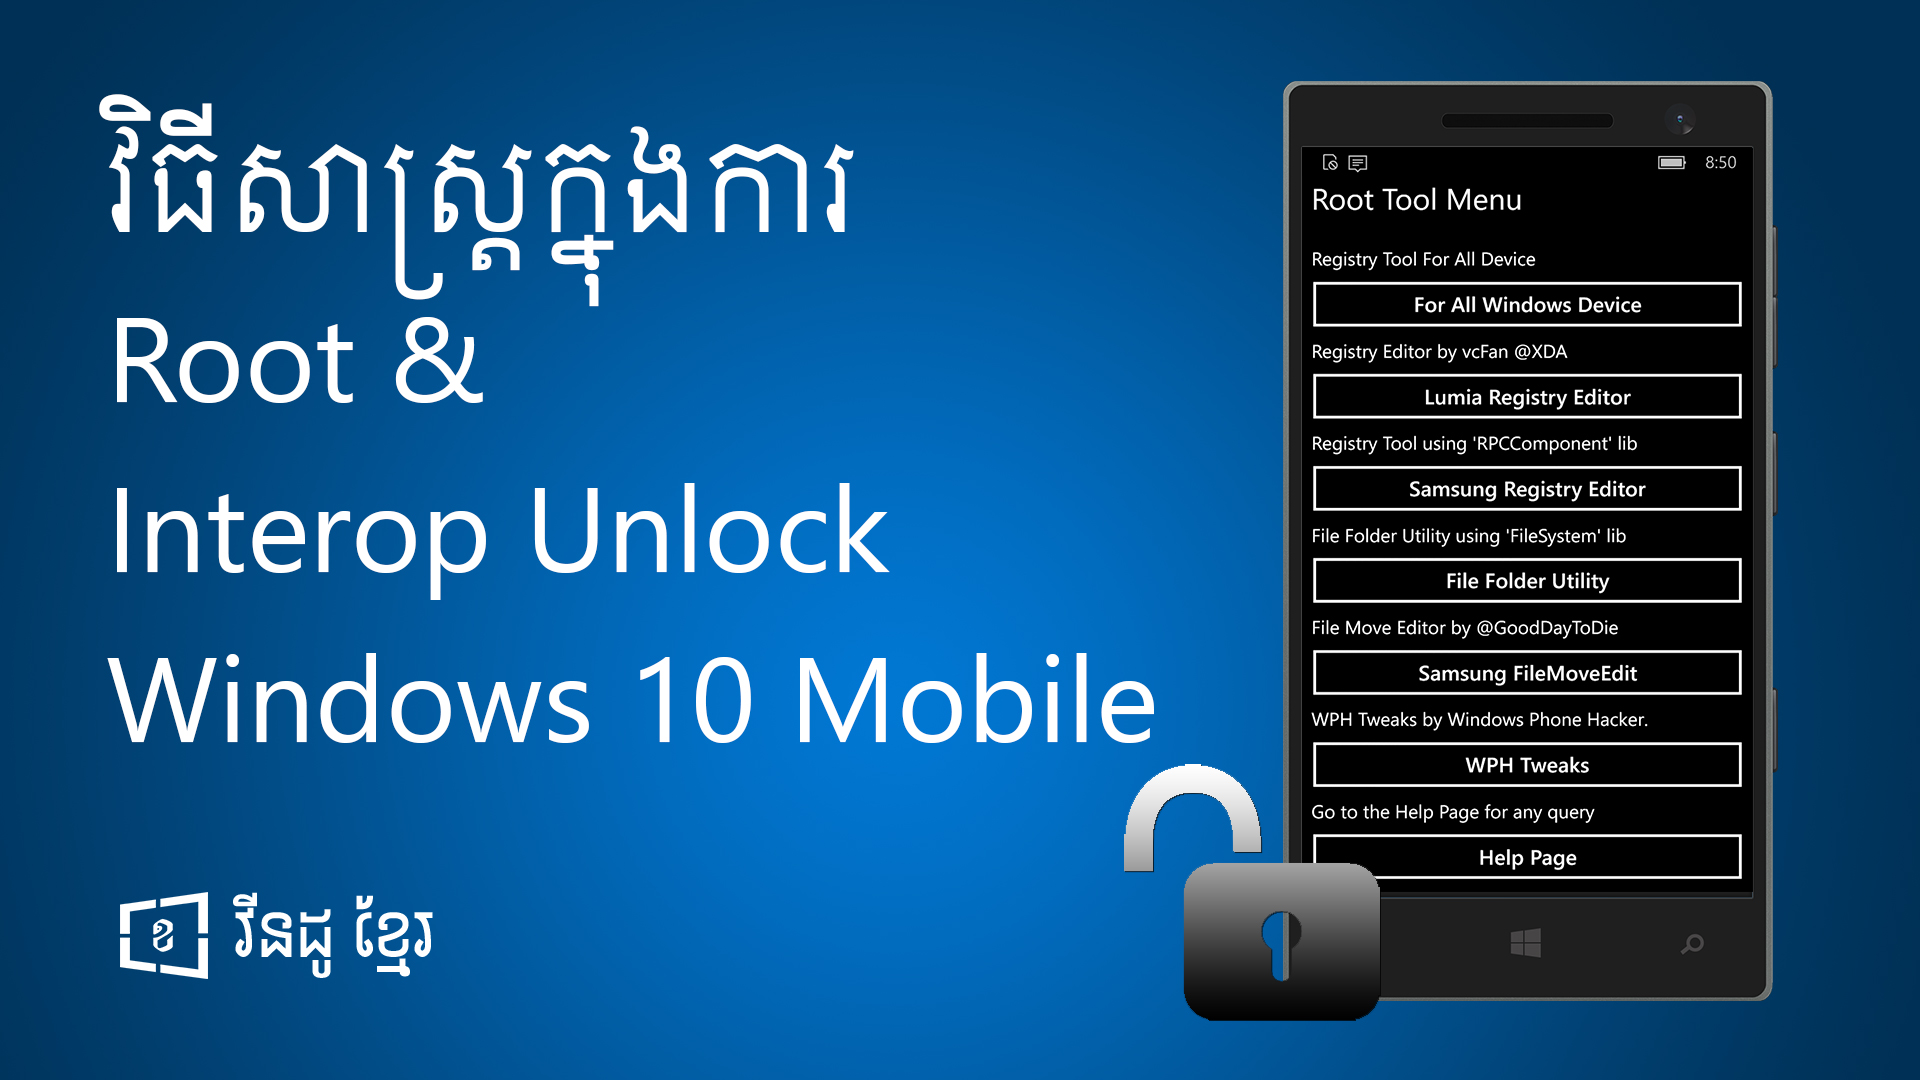 How-to-root-and-interop-unlock-windows-10-mobile